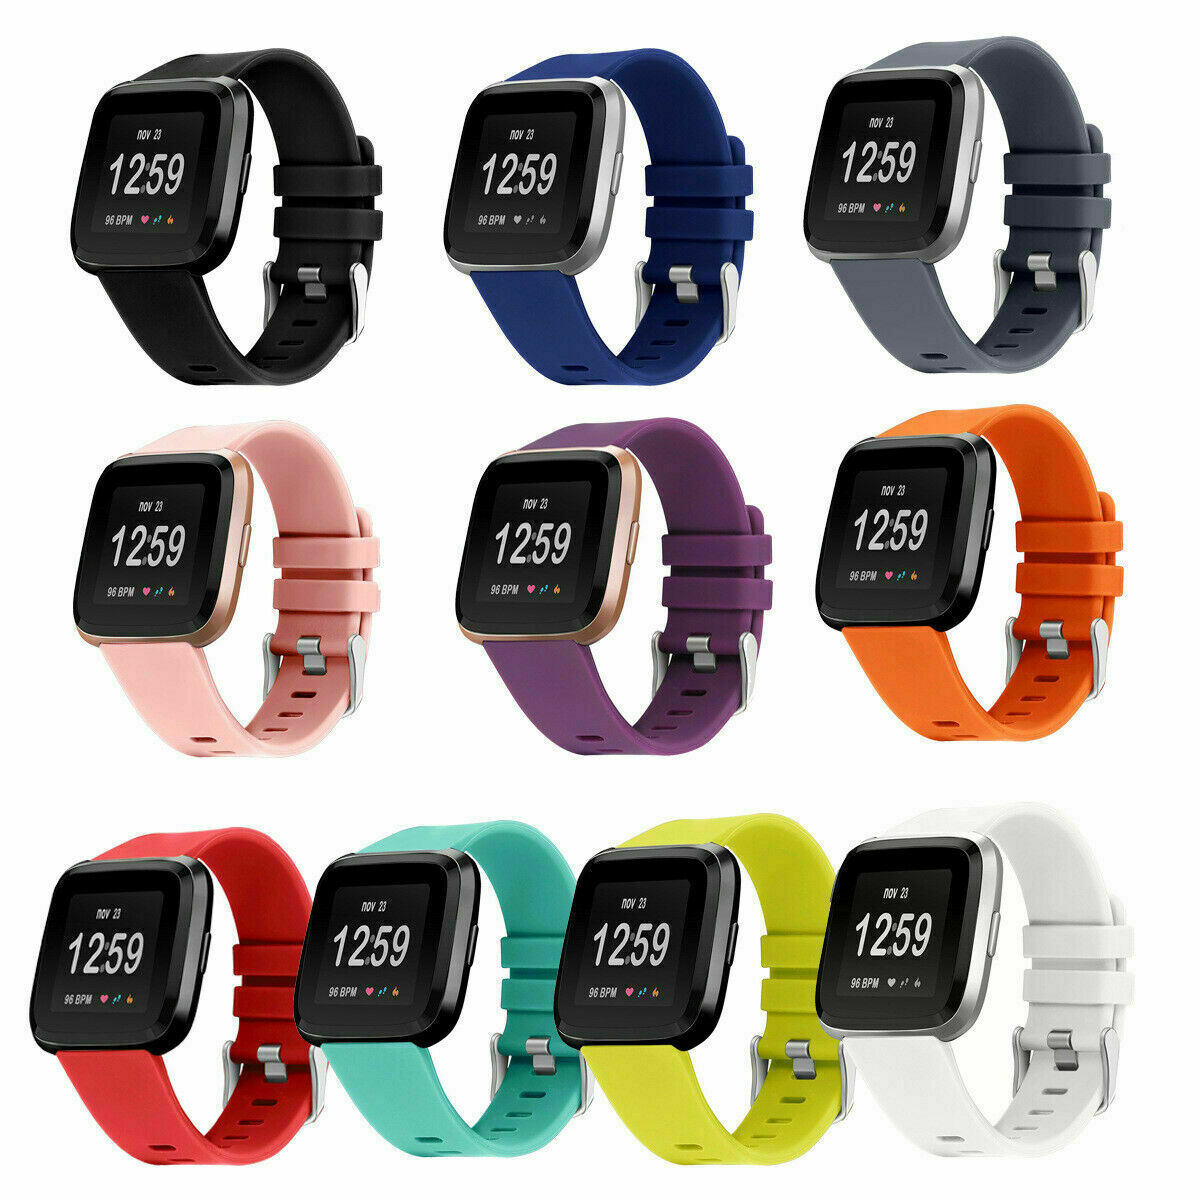 Jewellery - Replacement Strap Silicone Band Bracelet for Fitbit Versa 2/Versa Lite/Versa 1